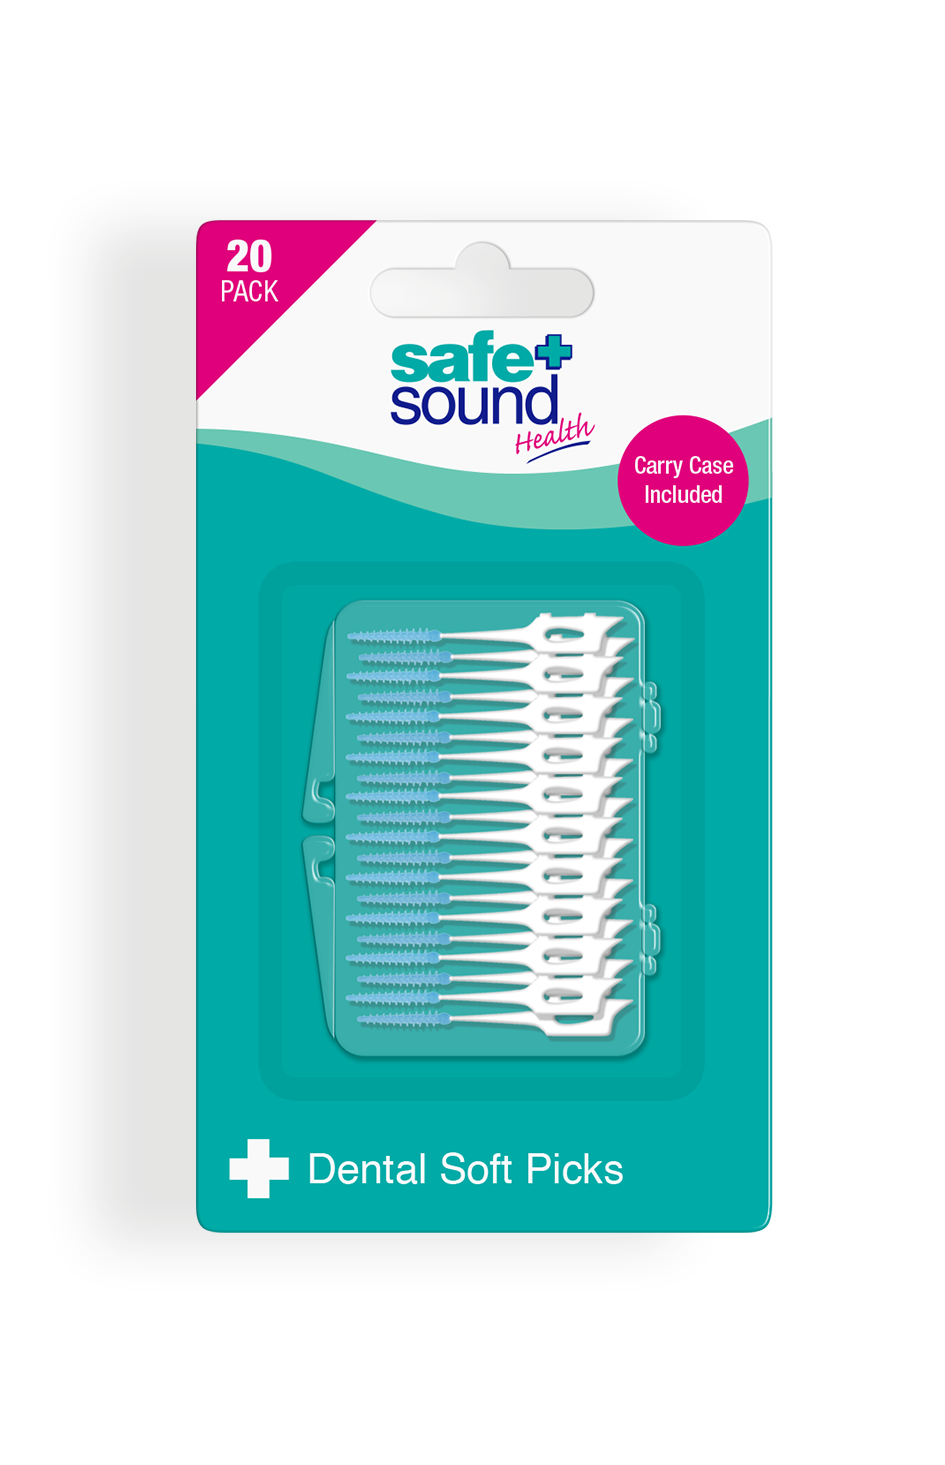 Safe and Sound Health Soft Dental Picks